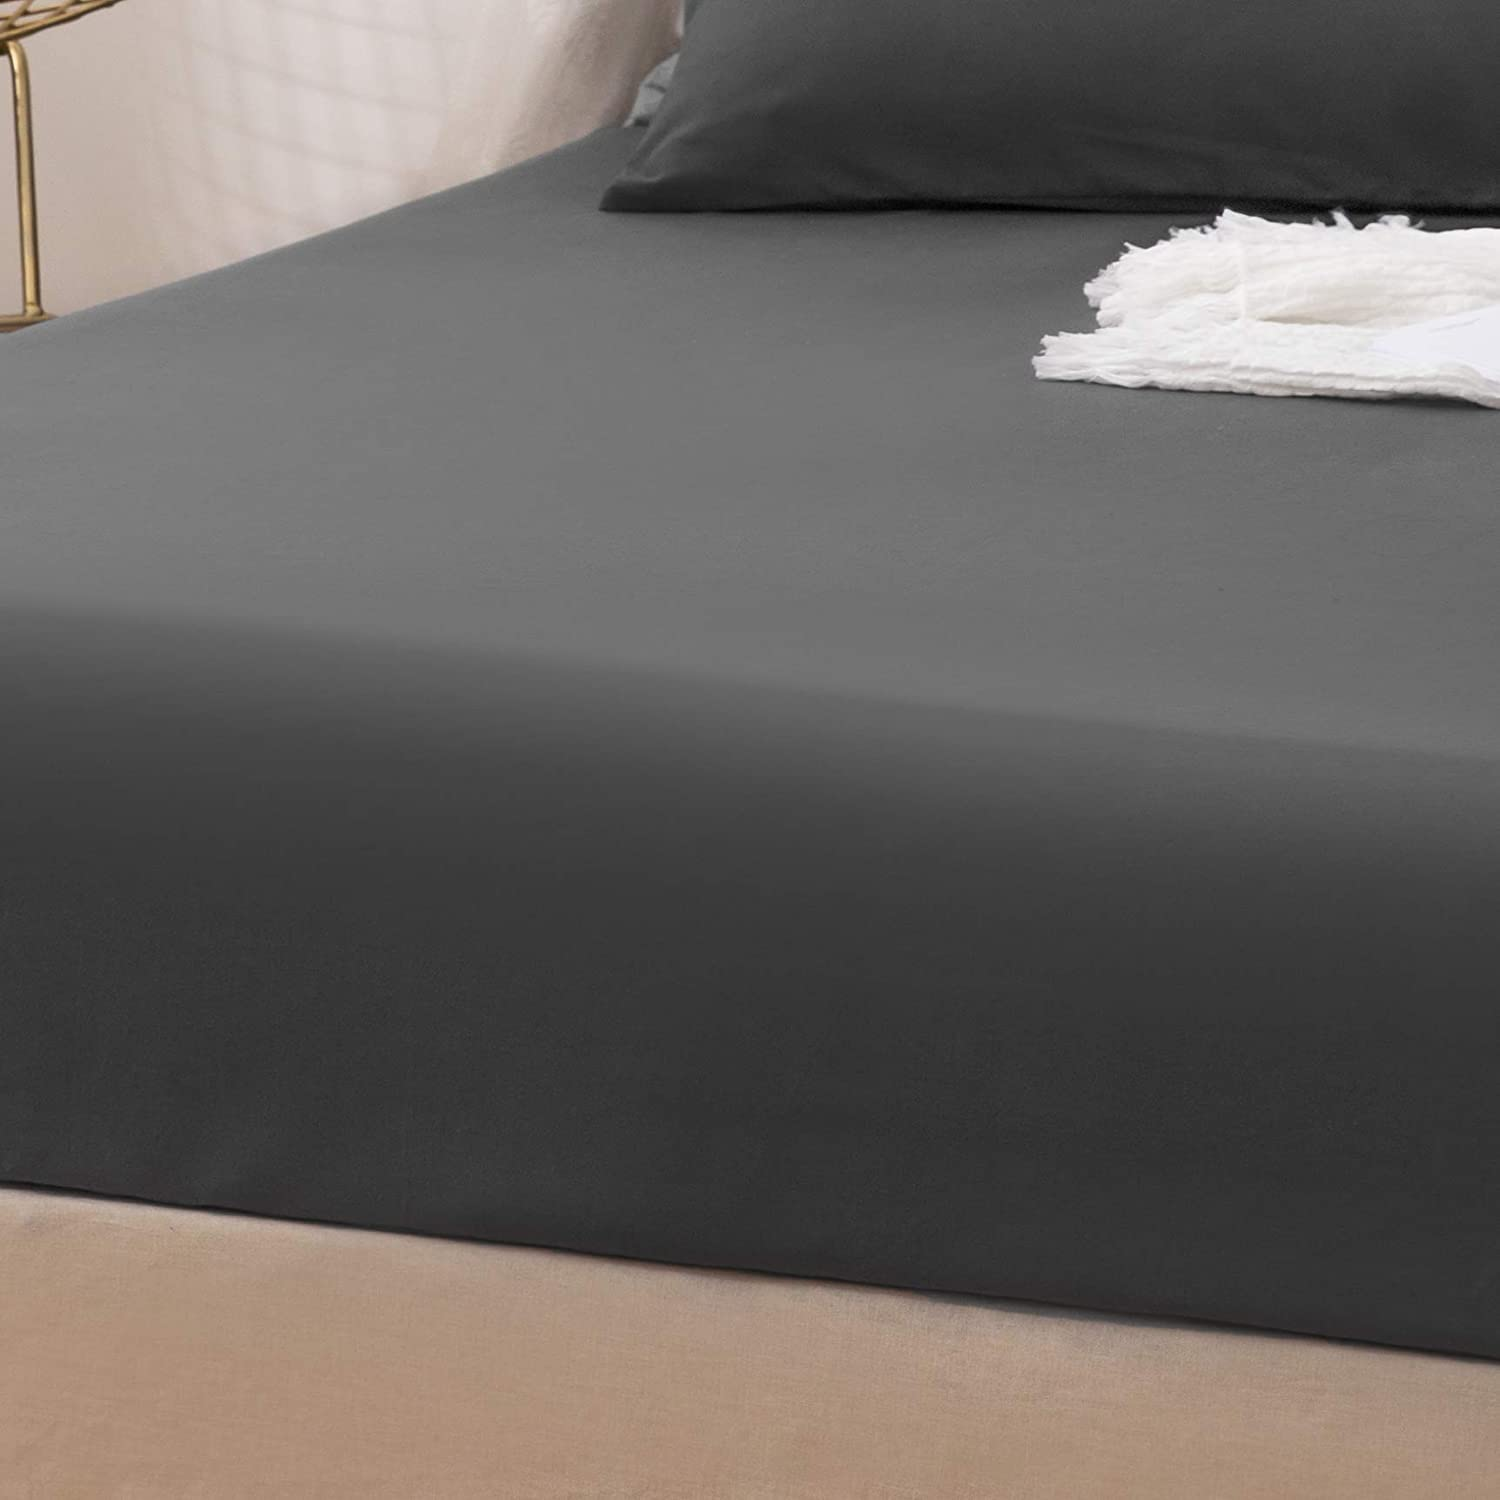 LS Fitted Bottom Sheet Only Premium Brushed Microfiber Ultra-Soft Fade Resistant Deep Pocket Queen Coffee